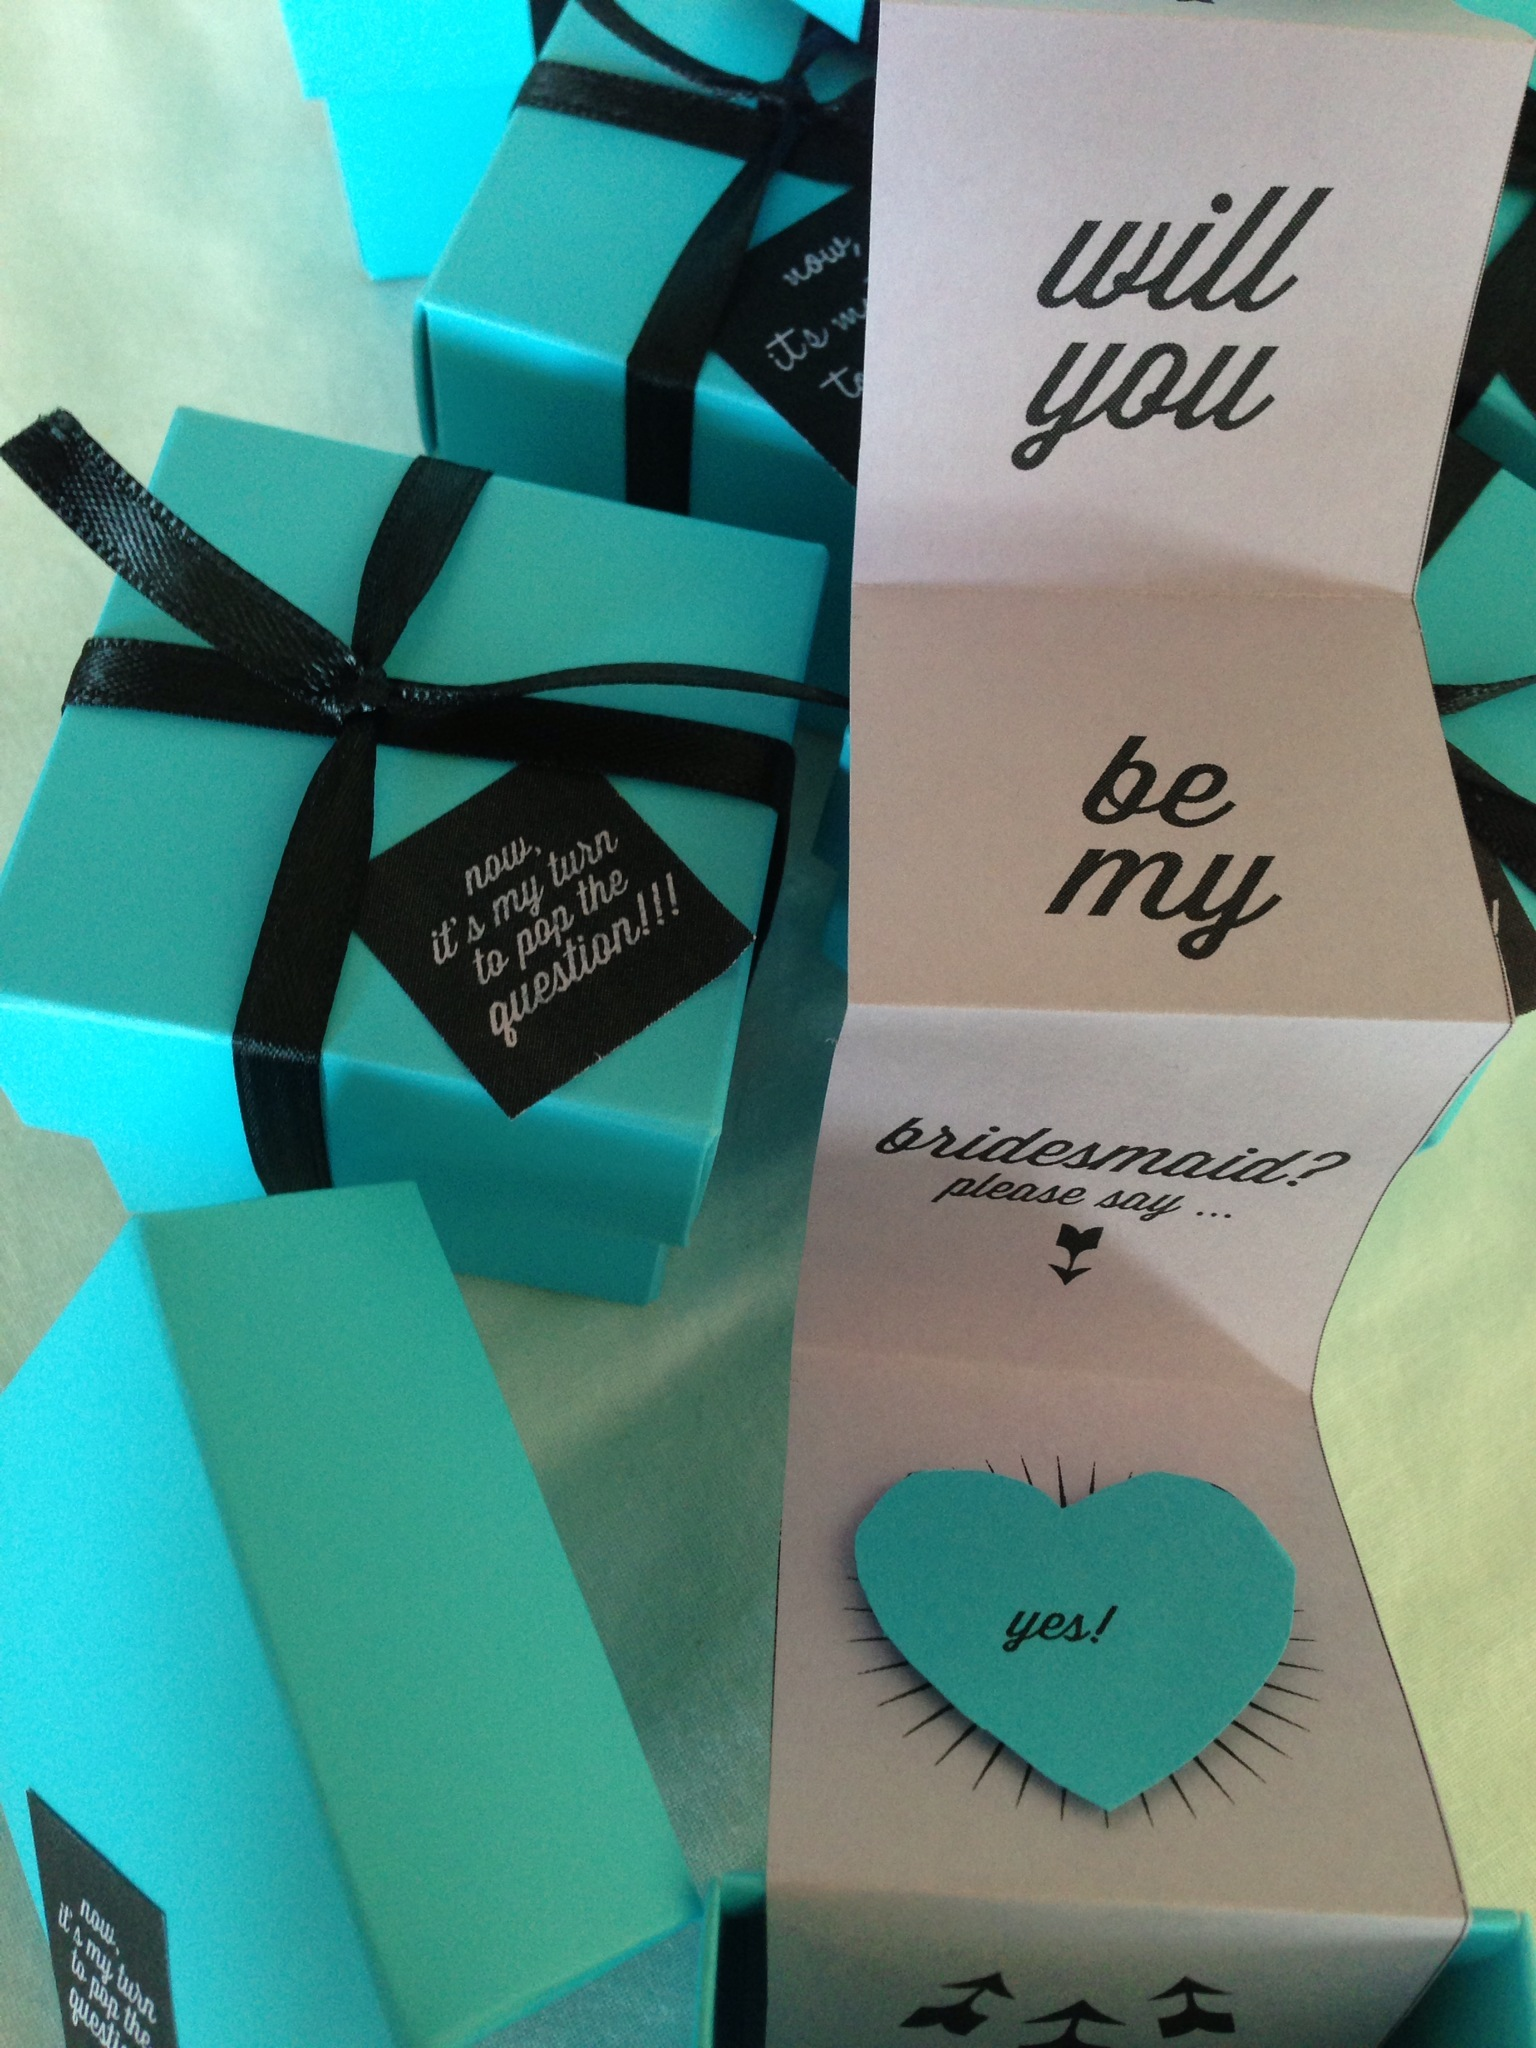 Will You Be My Bridesmaid Craft | The Majestic Vision Wedding Planning | Palm Beach, FL and Milwaukee, WI | www.themajesticvision.com